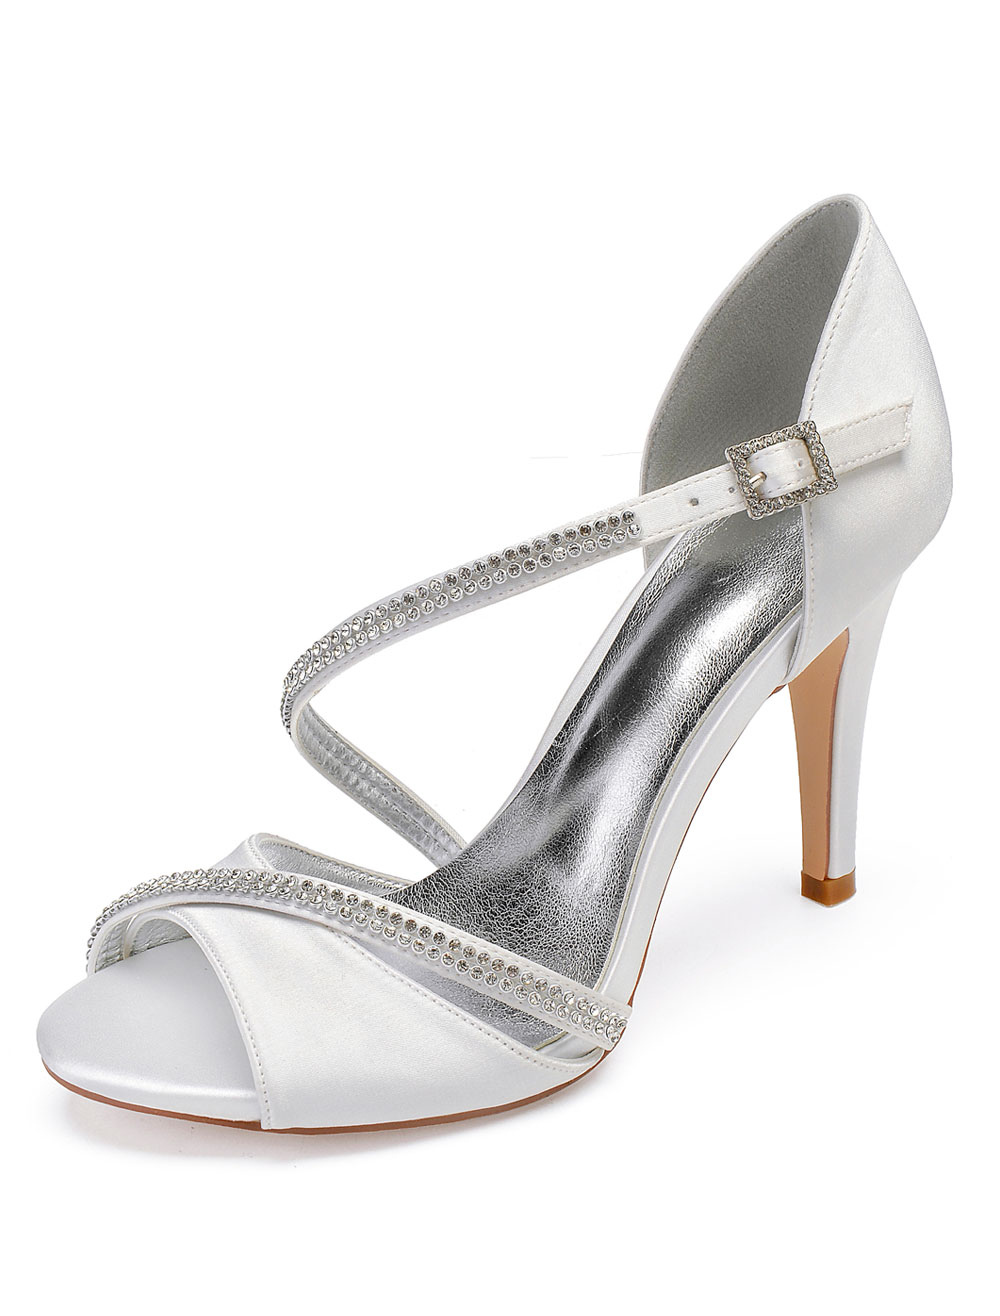 324d0c216e4 Ivory Wedding Shoes Satin Peep Toe Rhinestones Strappy Mother Shoes High  Heel Bridal Shoes